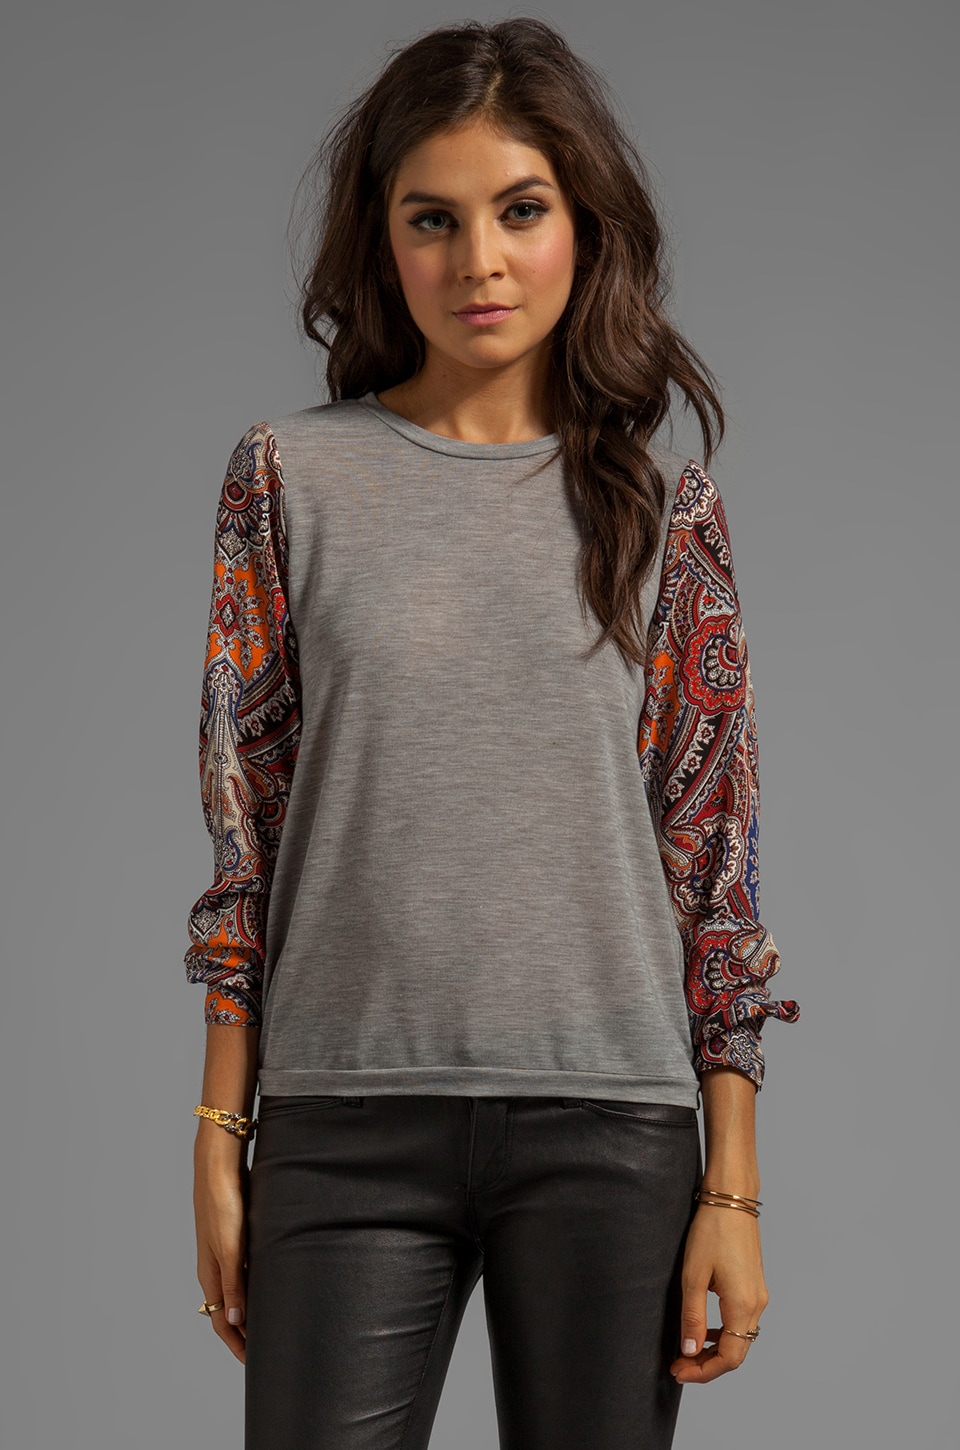 Charles Henry Knit Pullover with Chiffon Sleeves in Paisley